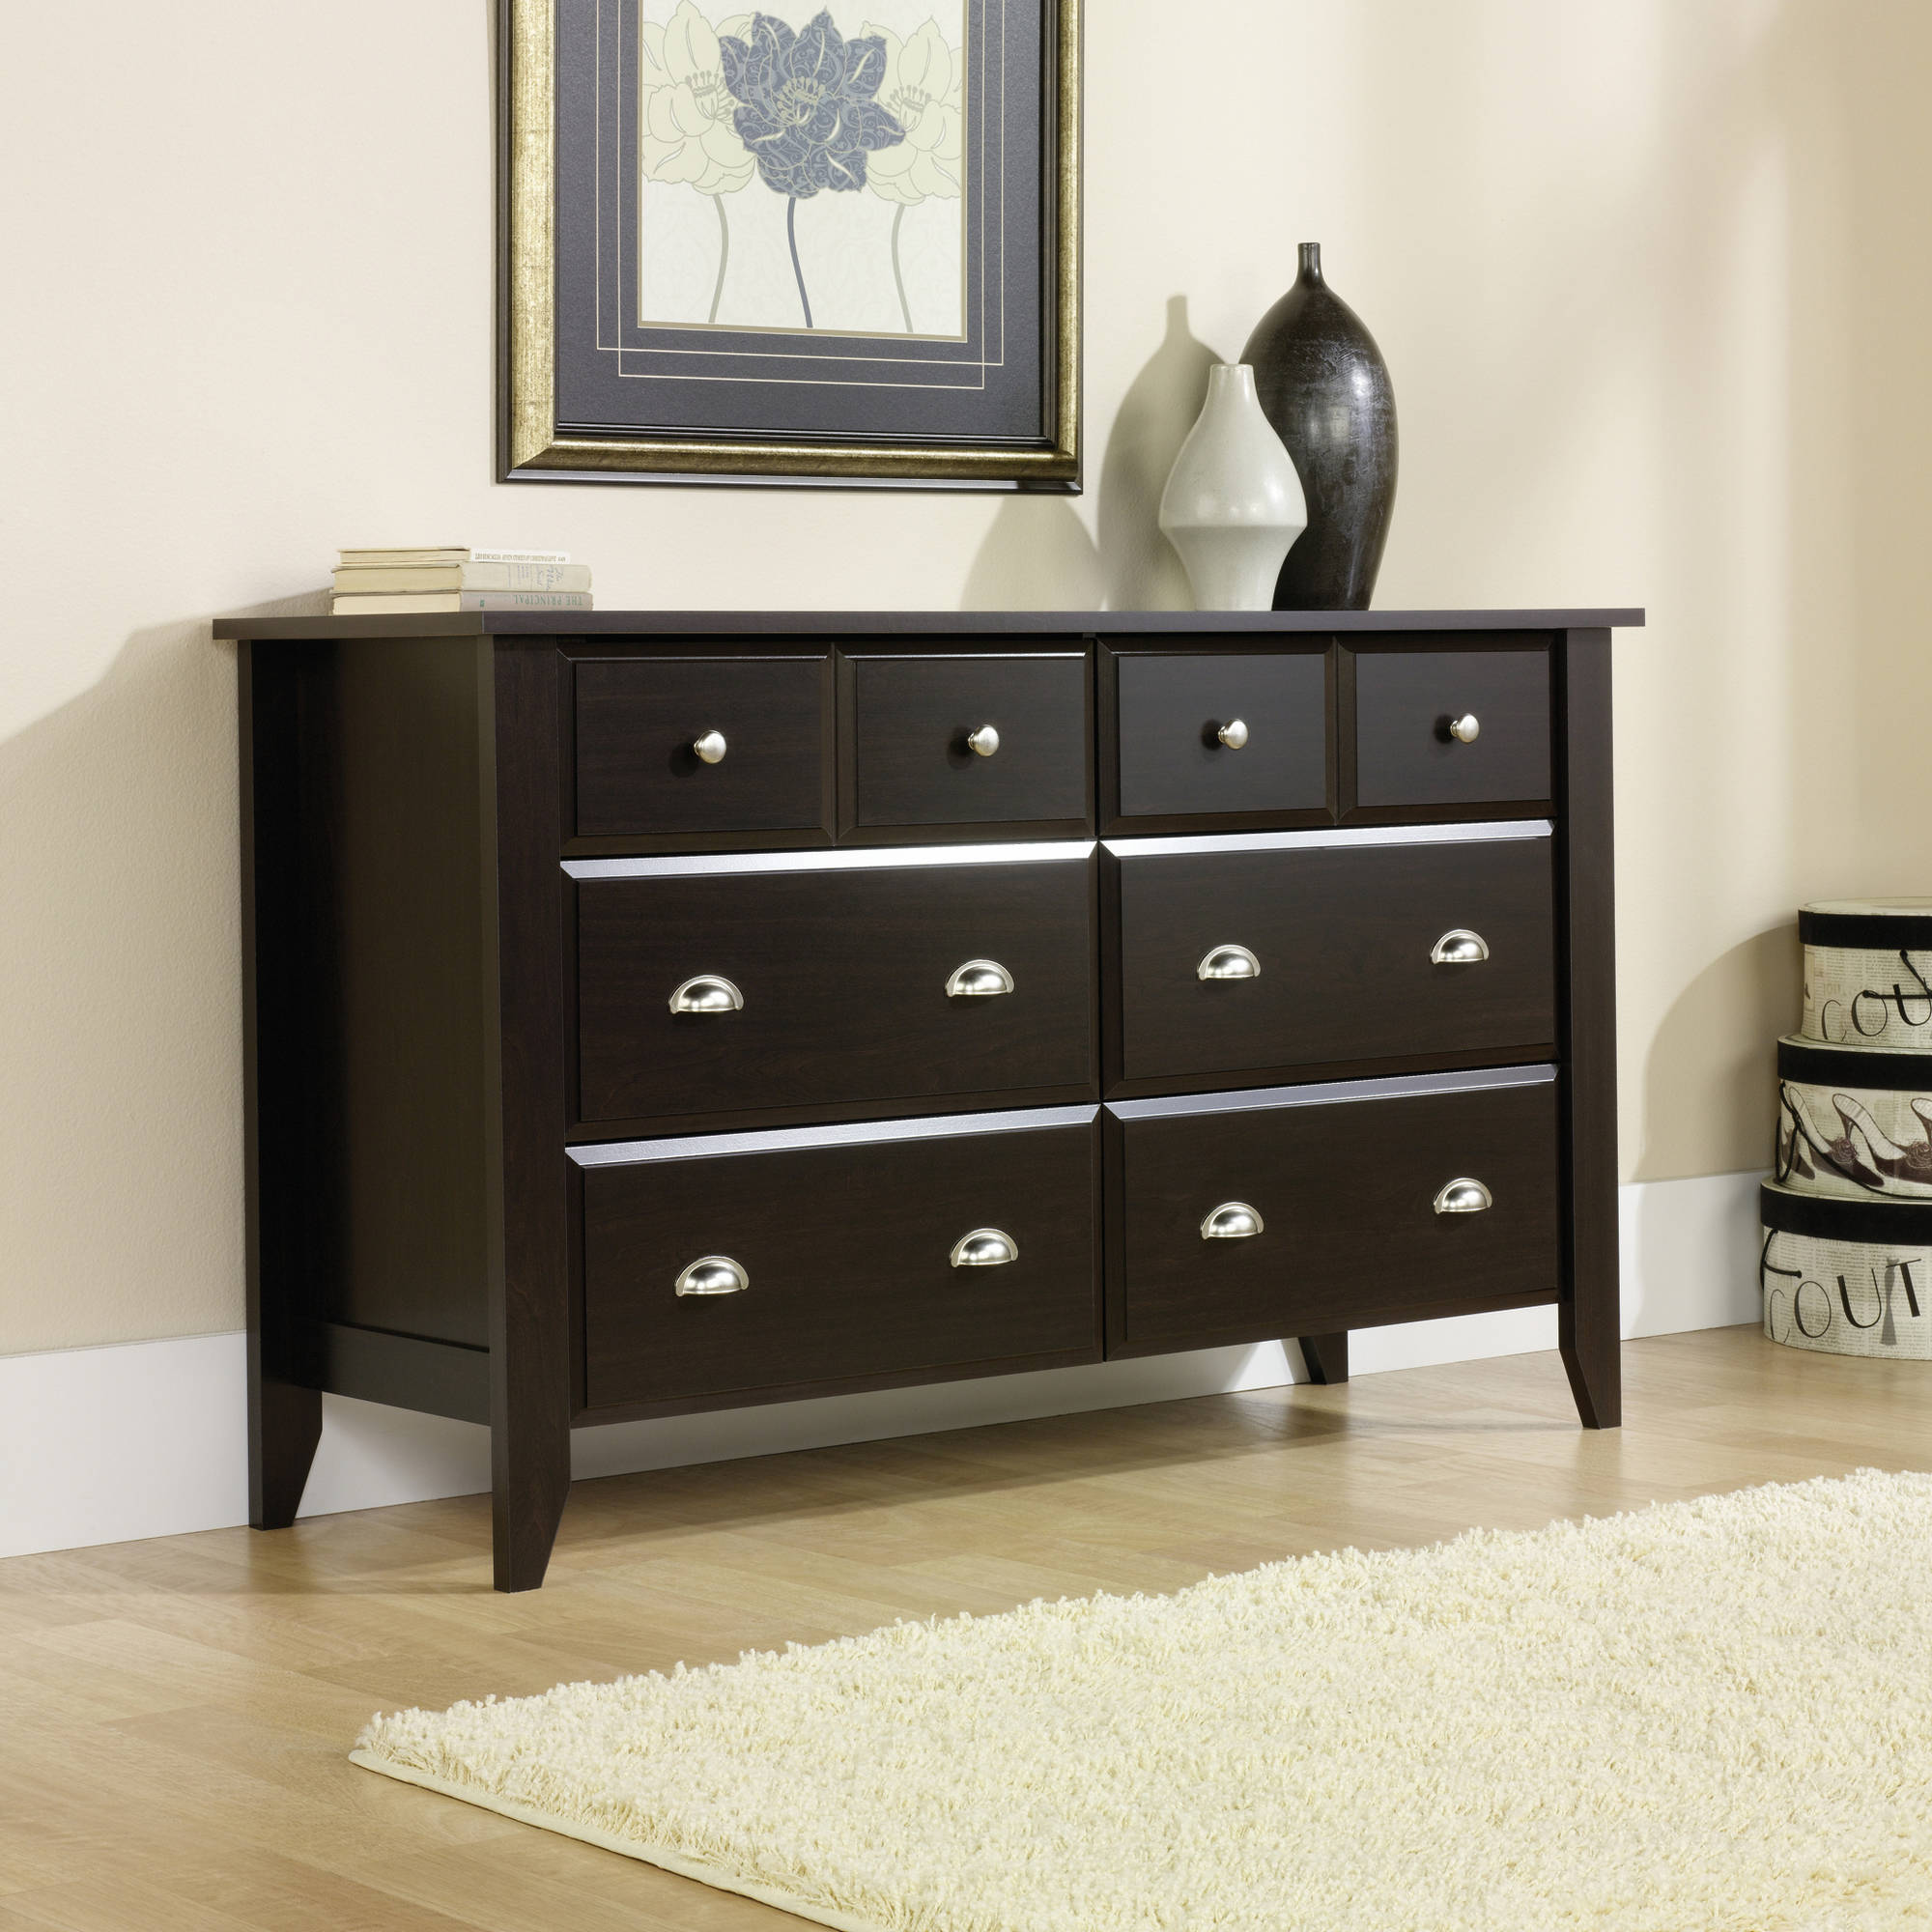 Sauder Shoal Creek Collection Dresser, Multiple Finishes